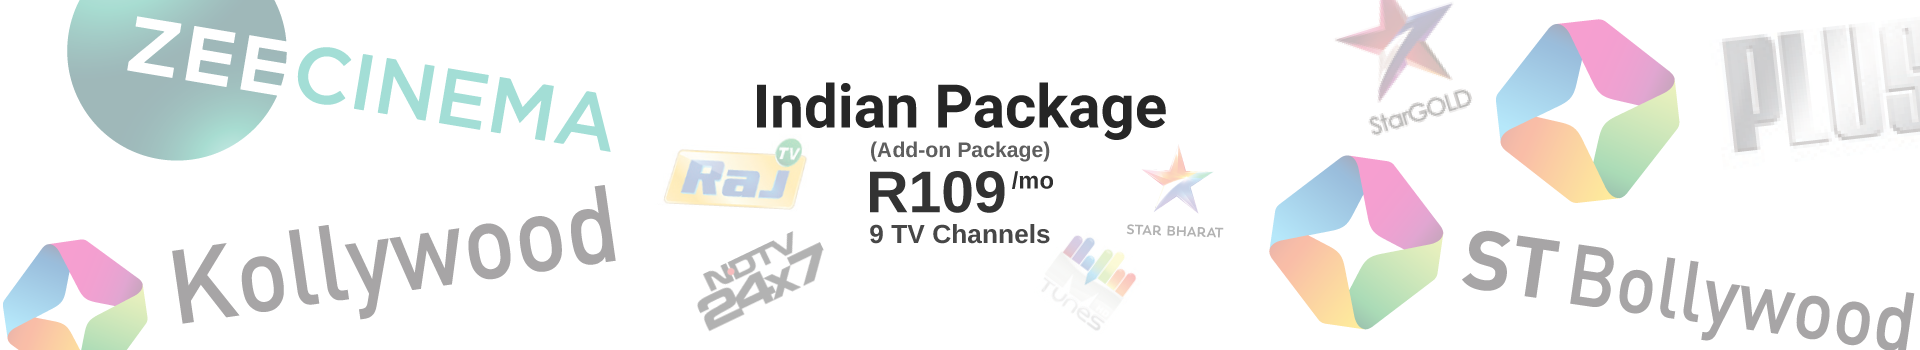 Indian Package: R109